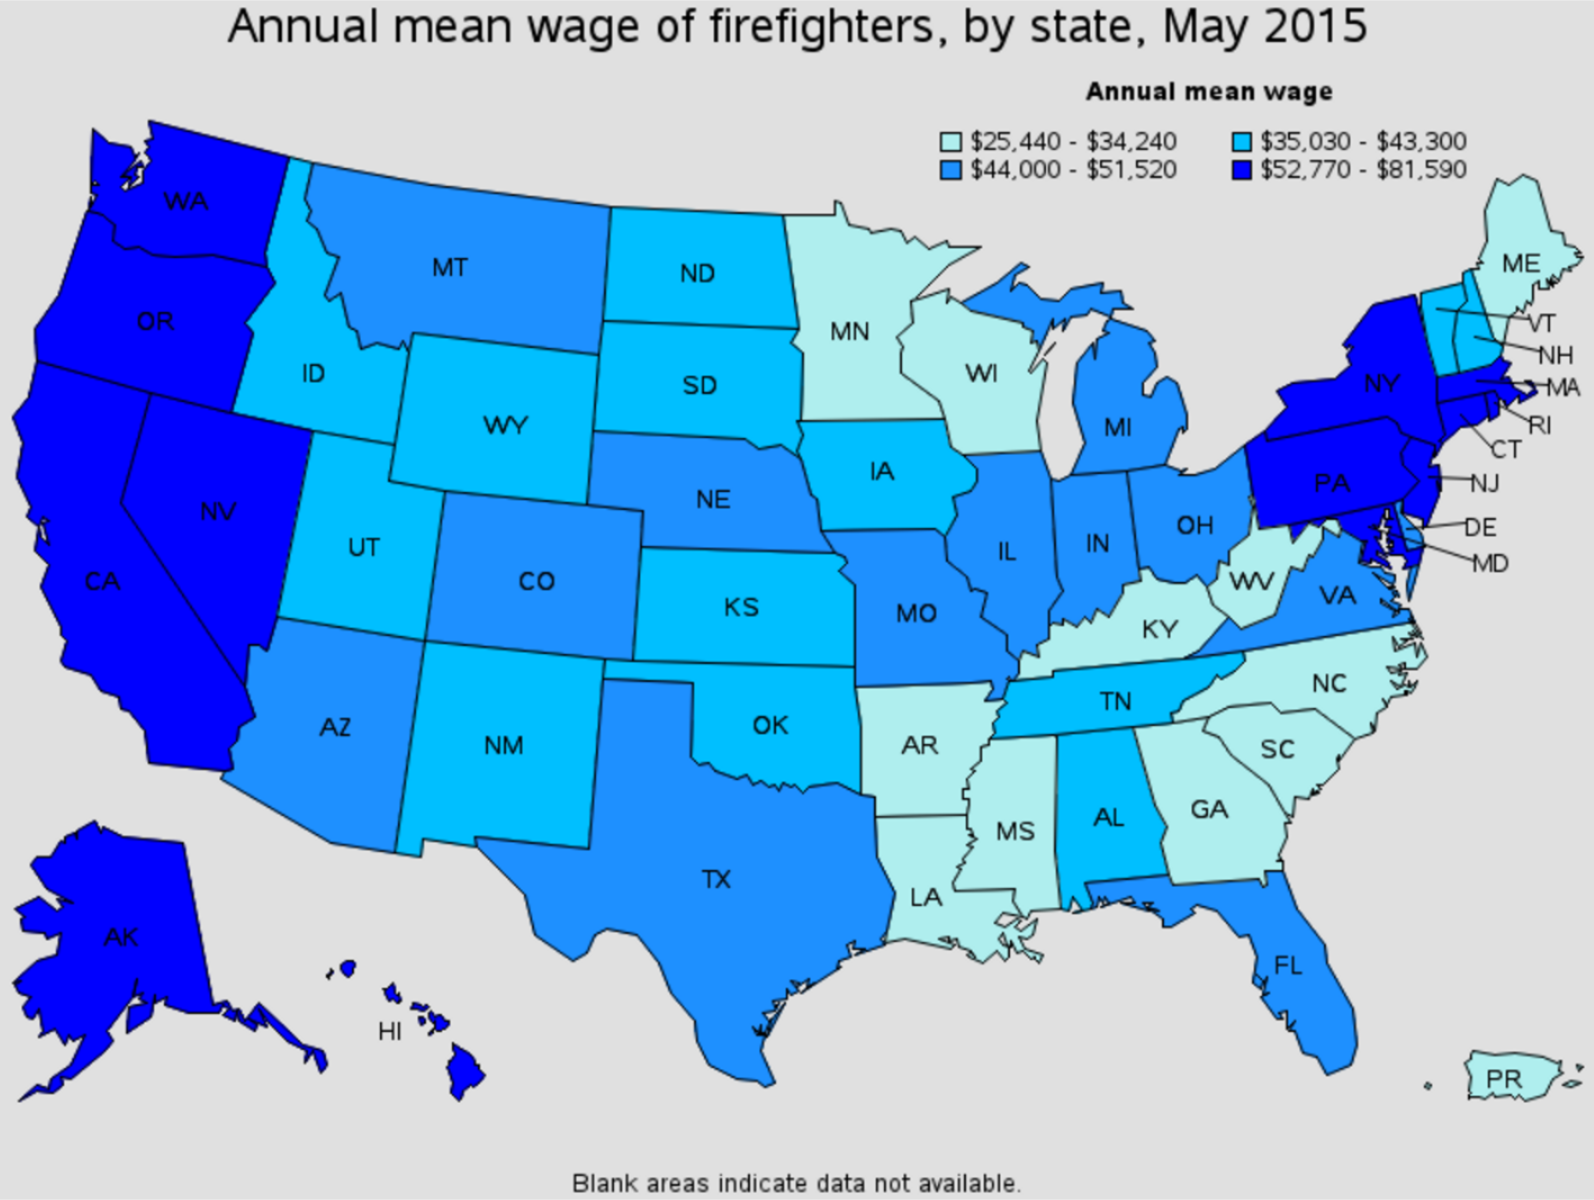 firefighter average salary by state Woodward Iowa